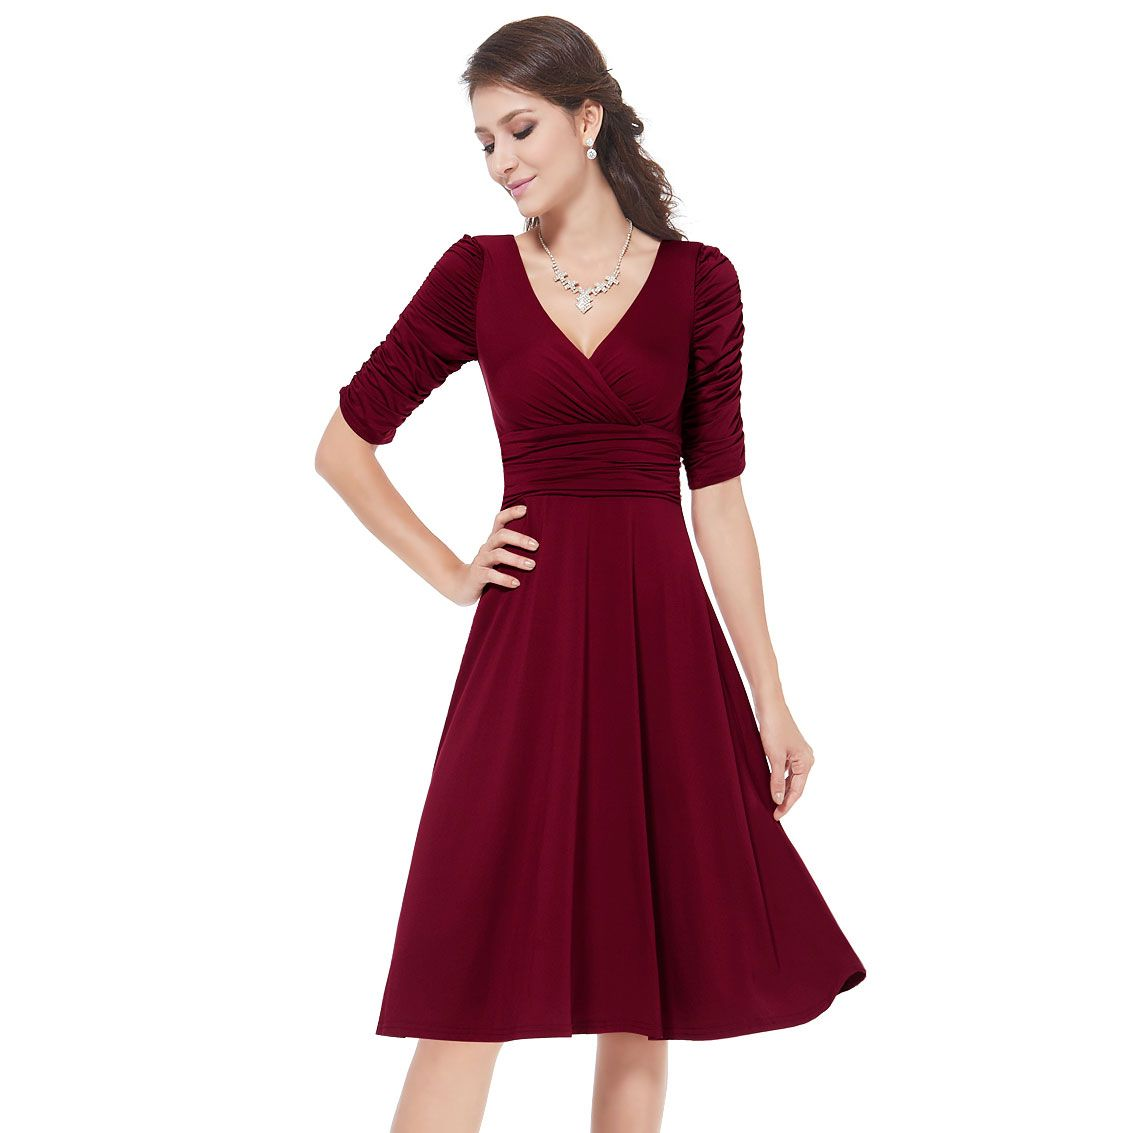 Ever-Pretty Ever Pretty 3/4 Sleeve Ruched Waist Classy V-Neck Casual Cocktail Dress 03632 - Clothing, Shoes & Jewelry - Clothing - Women's Clothing - Women's Dresses